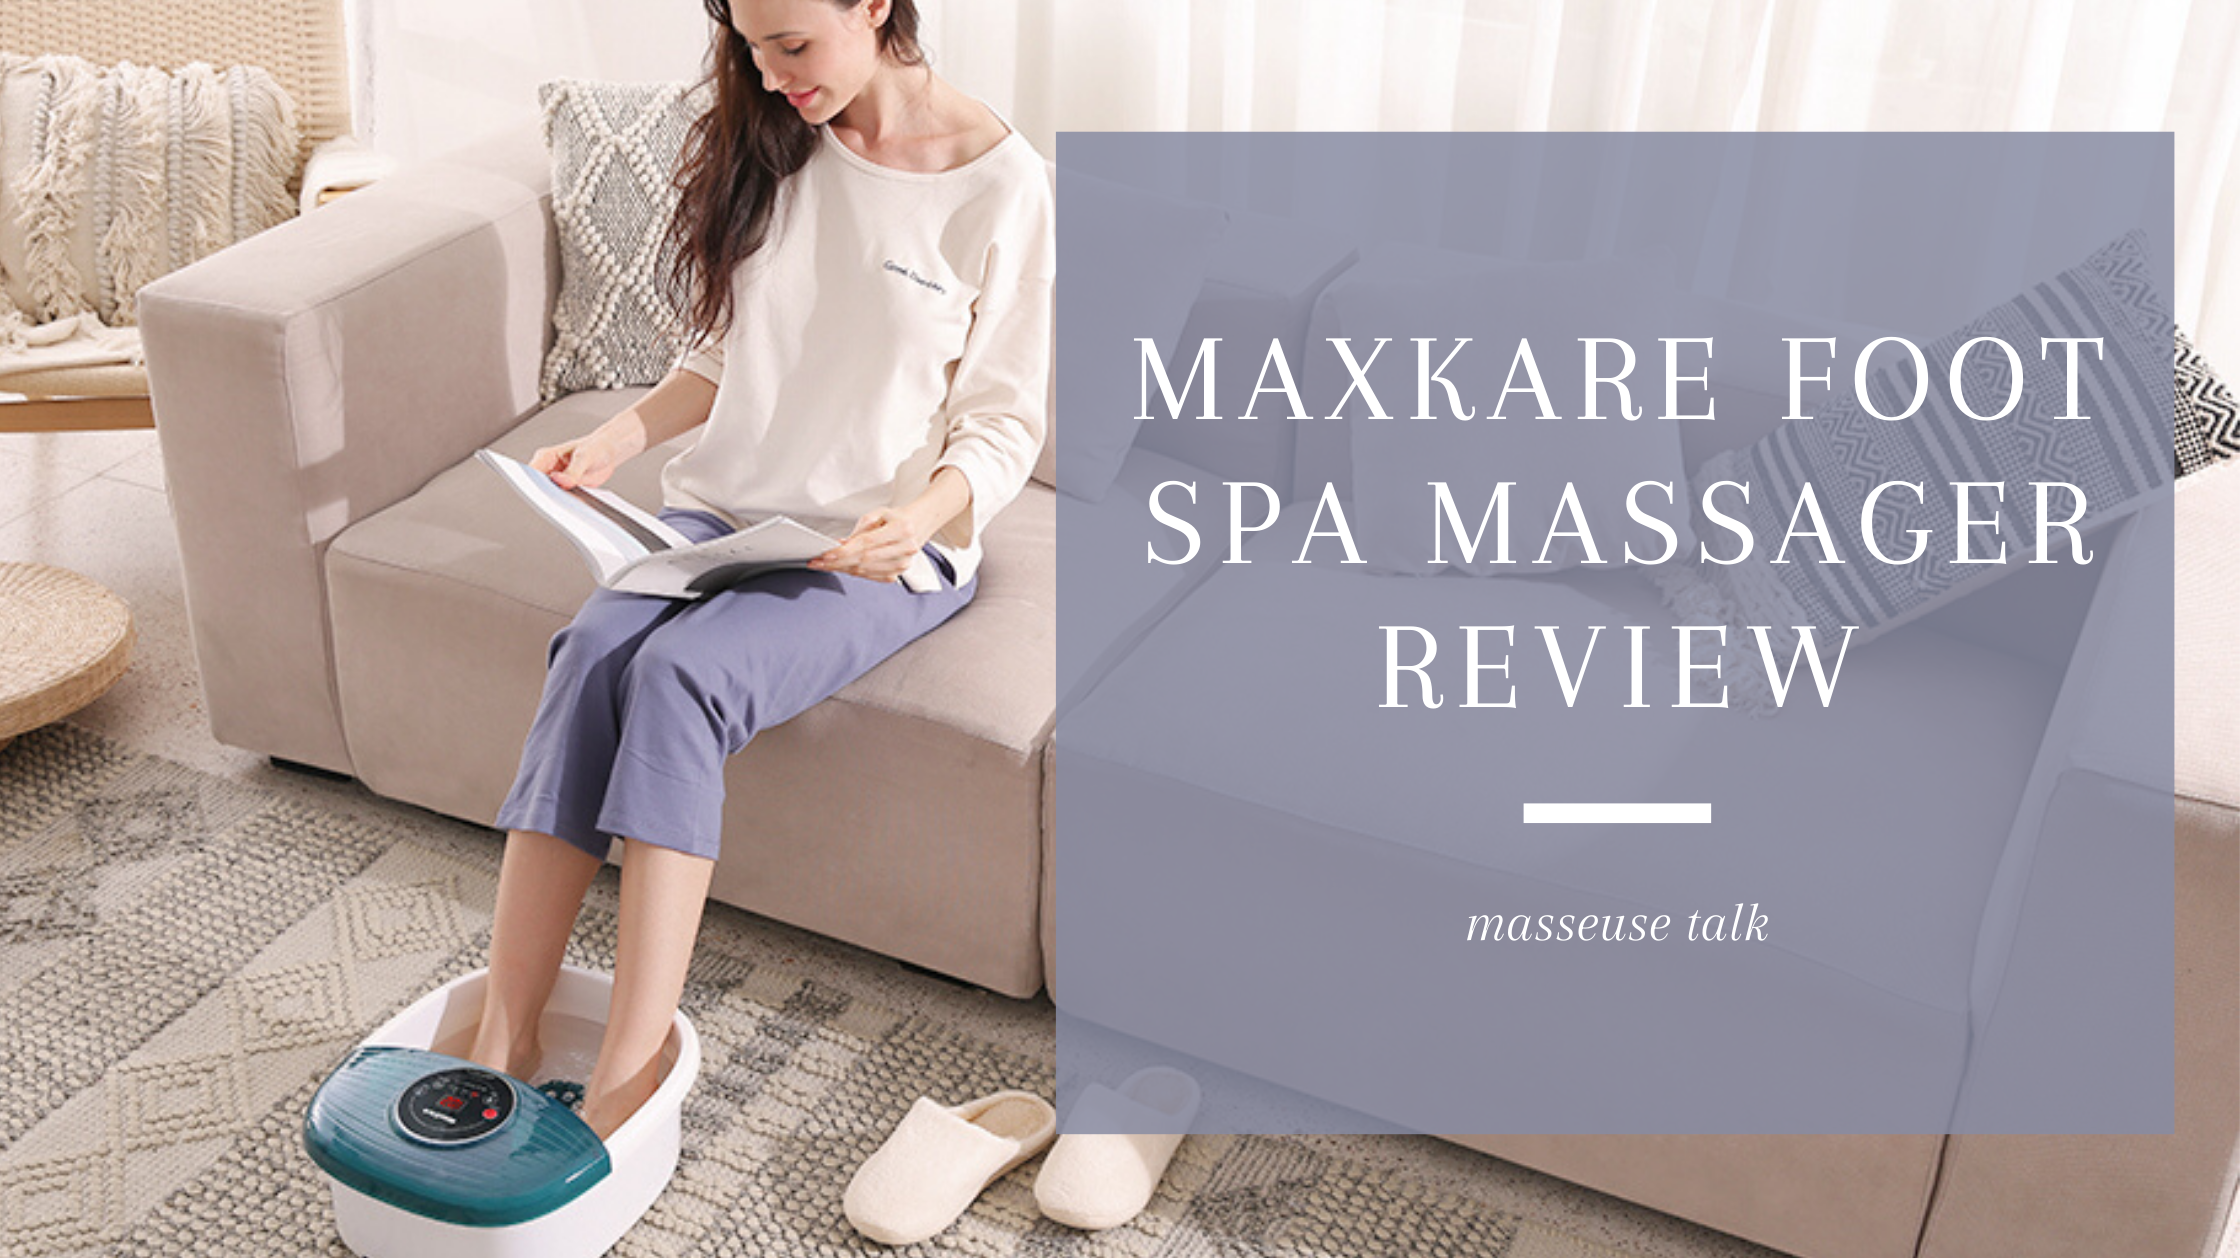 MaxKare Foot Spa Massager